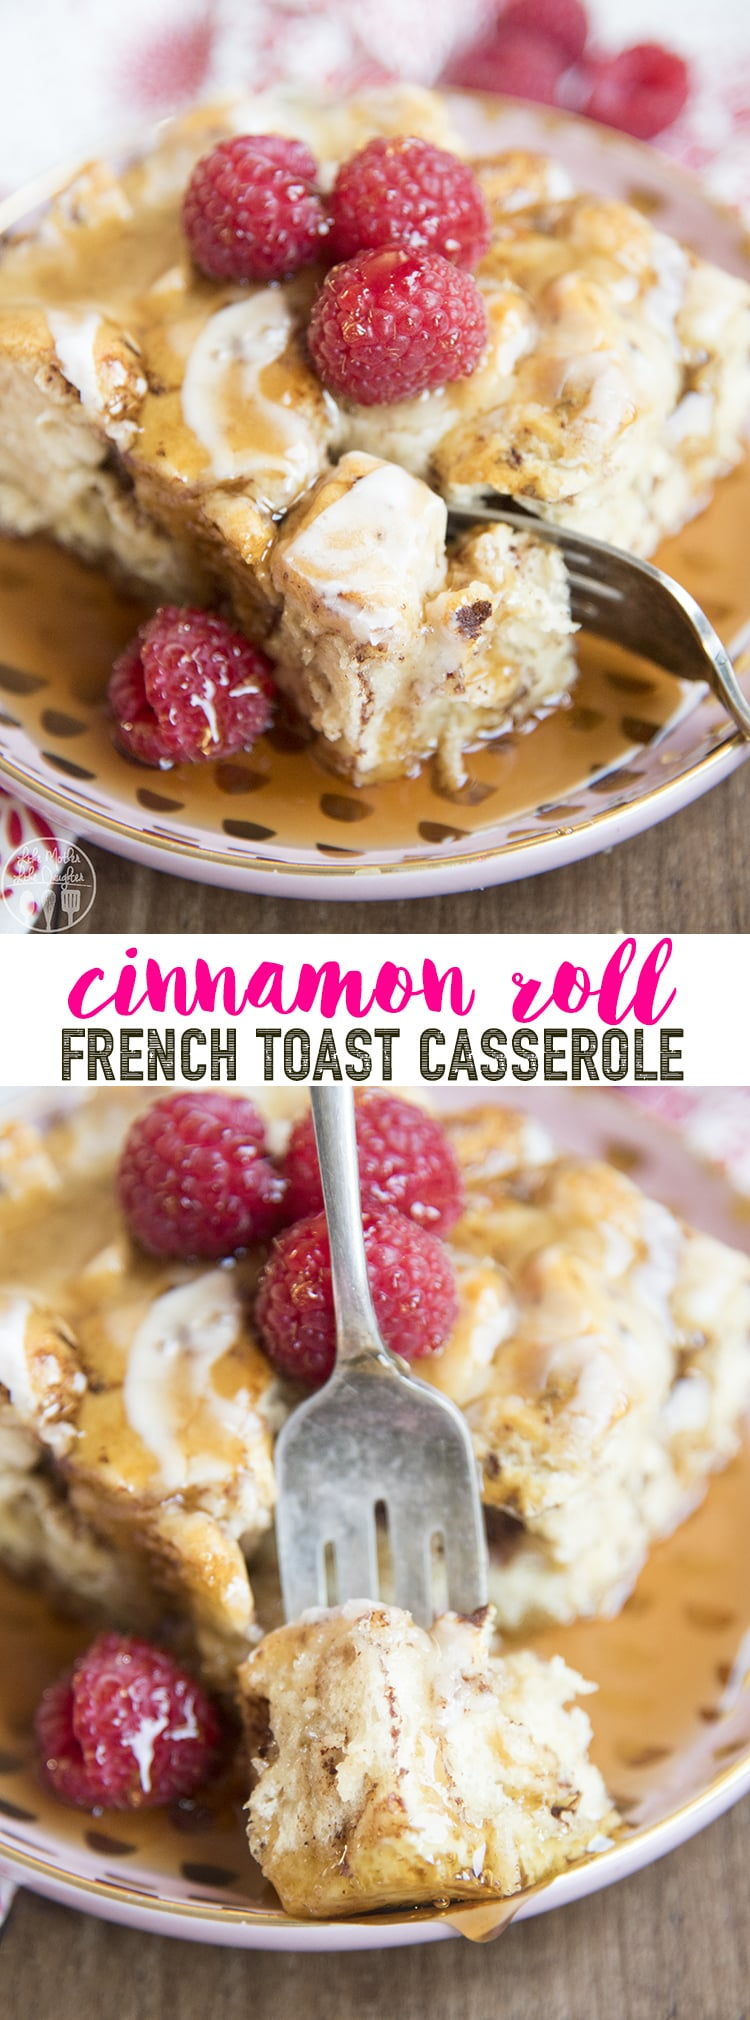 This cinnamon roll french toast casserole is the delicious mix of warm cinnamon rolls and french toast in a super easy, delicious casserole that is the perfect breakfast or brunch for the holidays!